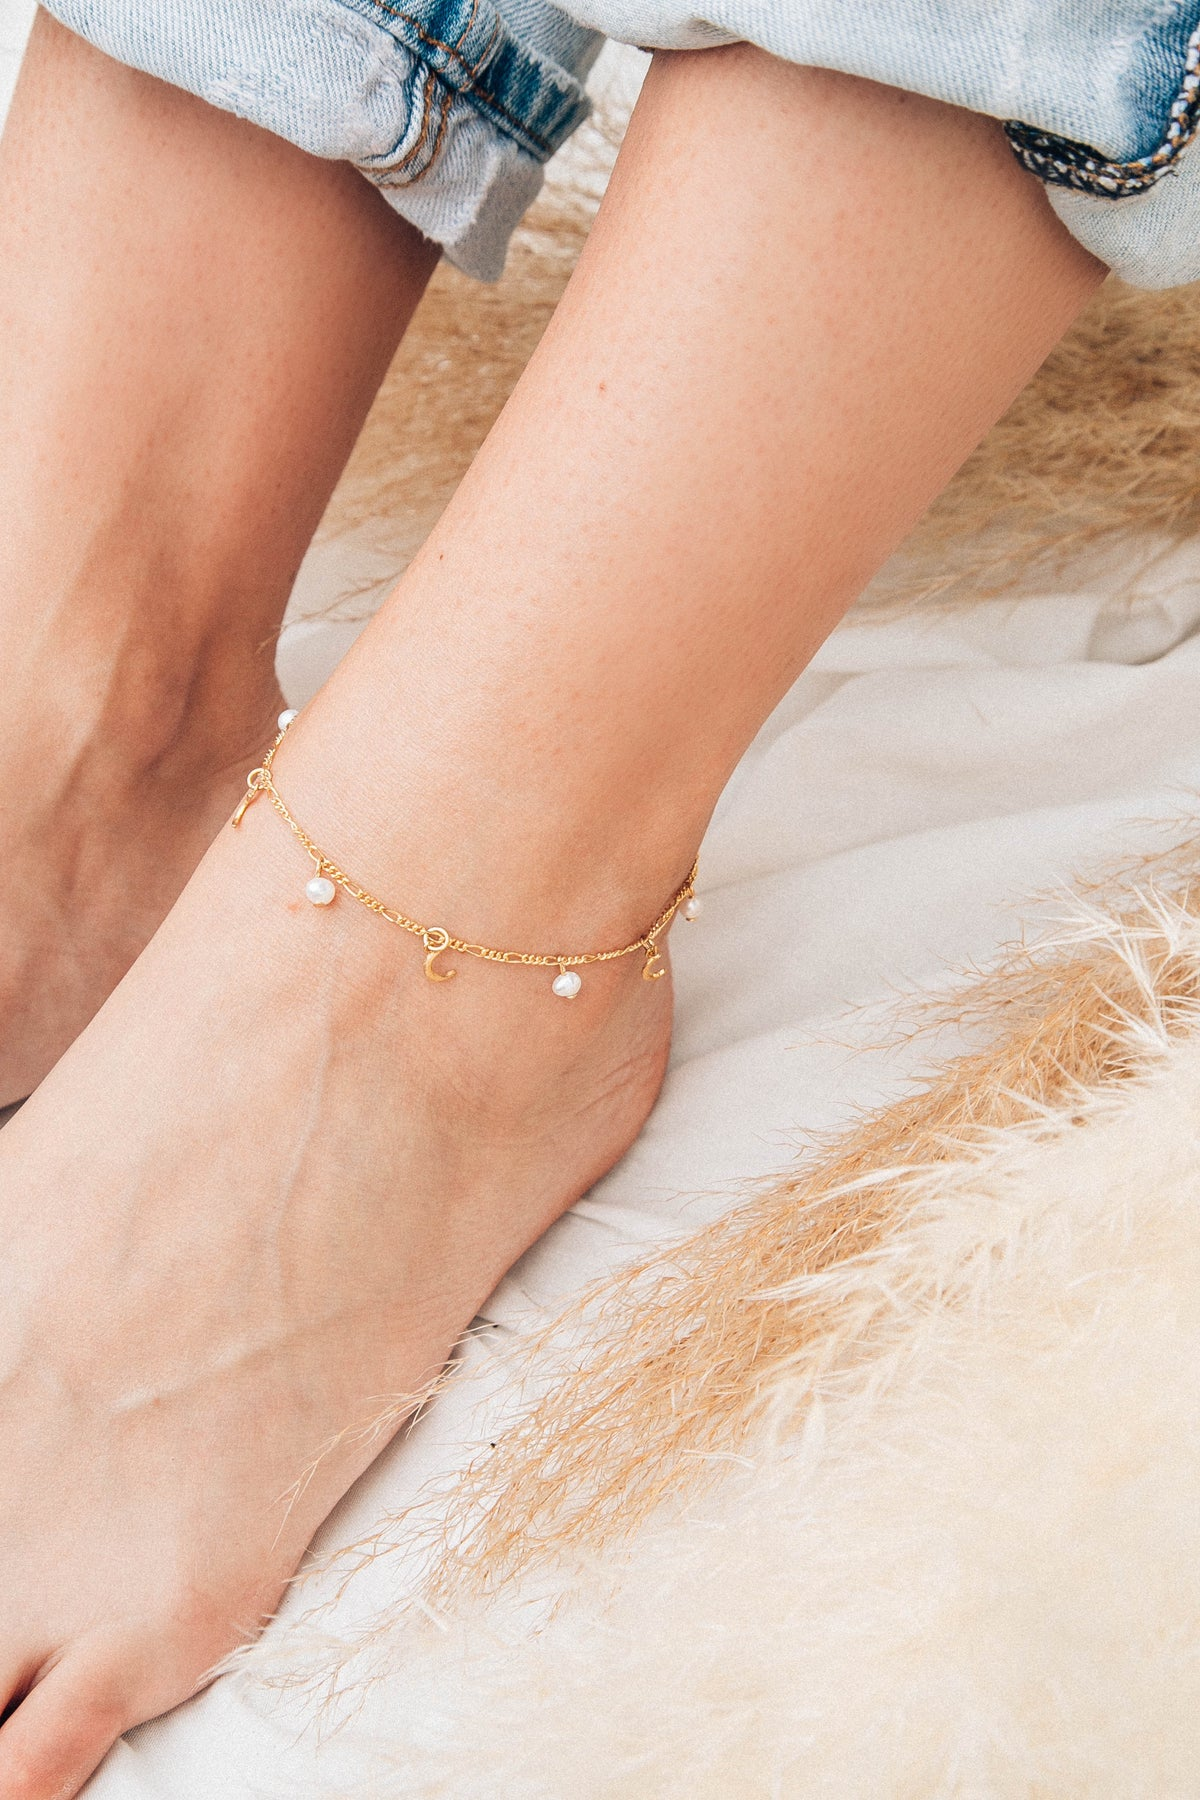 Moon & Pearl Anklet by KBT